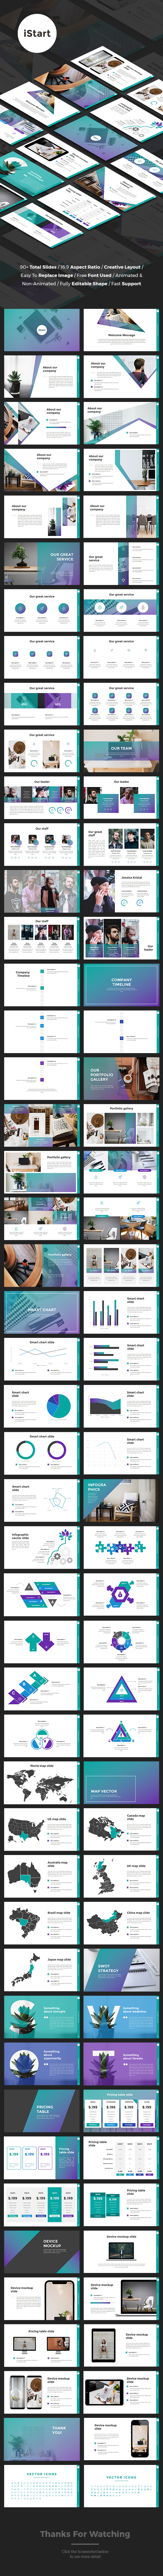 iStart - StartUp Google Slides Template - Google Slides Presentation Templates